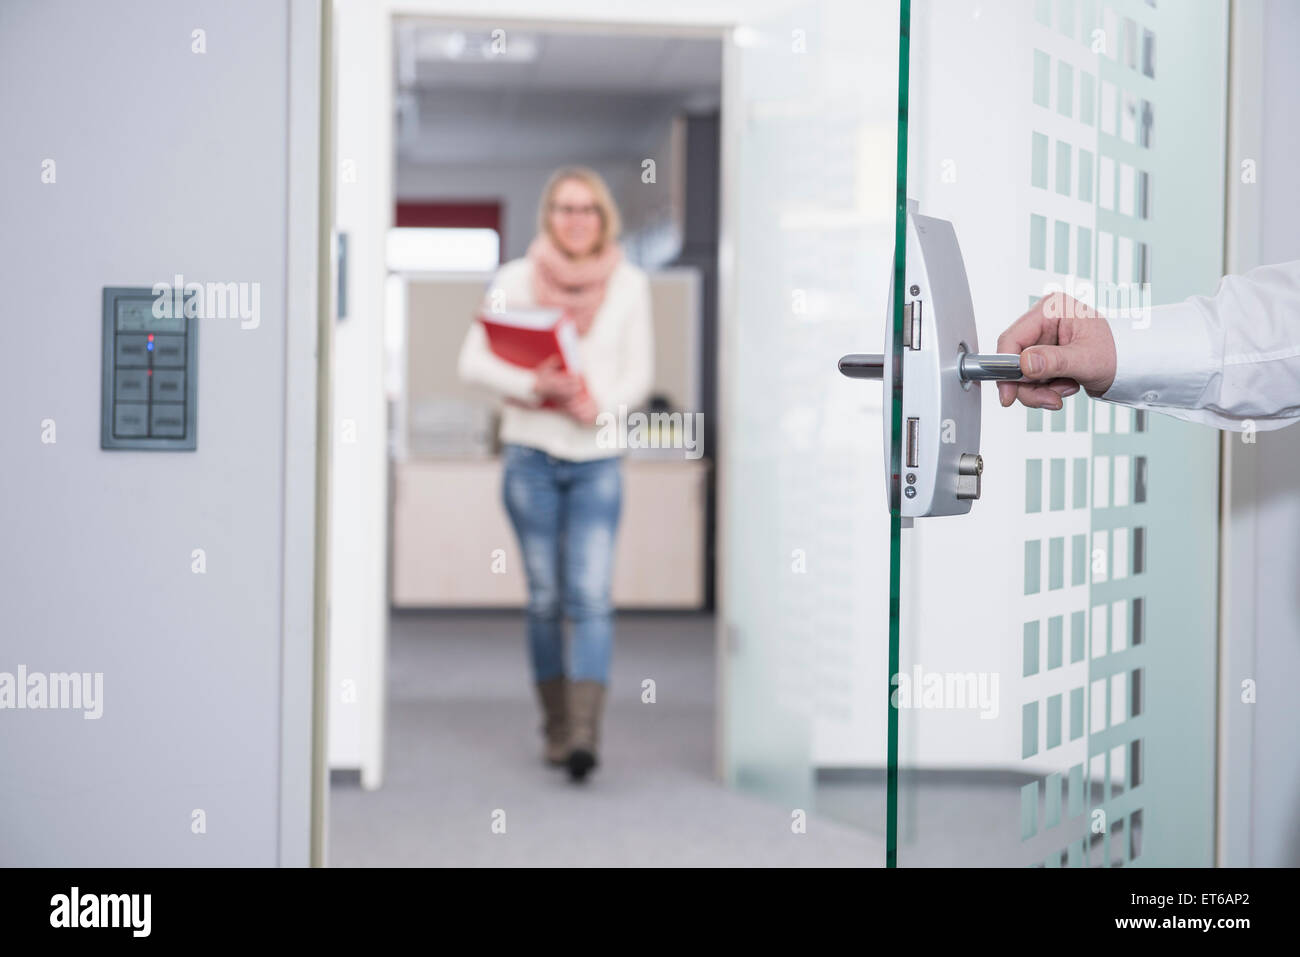 Businessman opening office door for his colleague, Munich, Bavaria, Germany - Stock Image